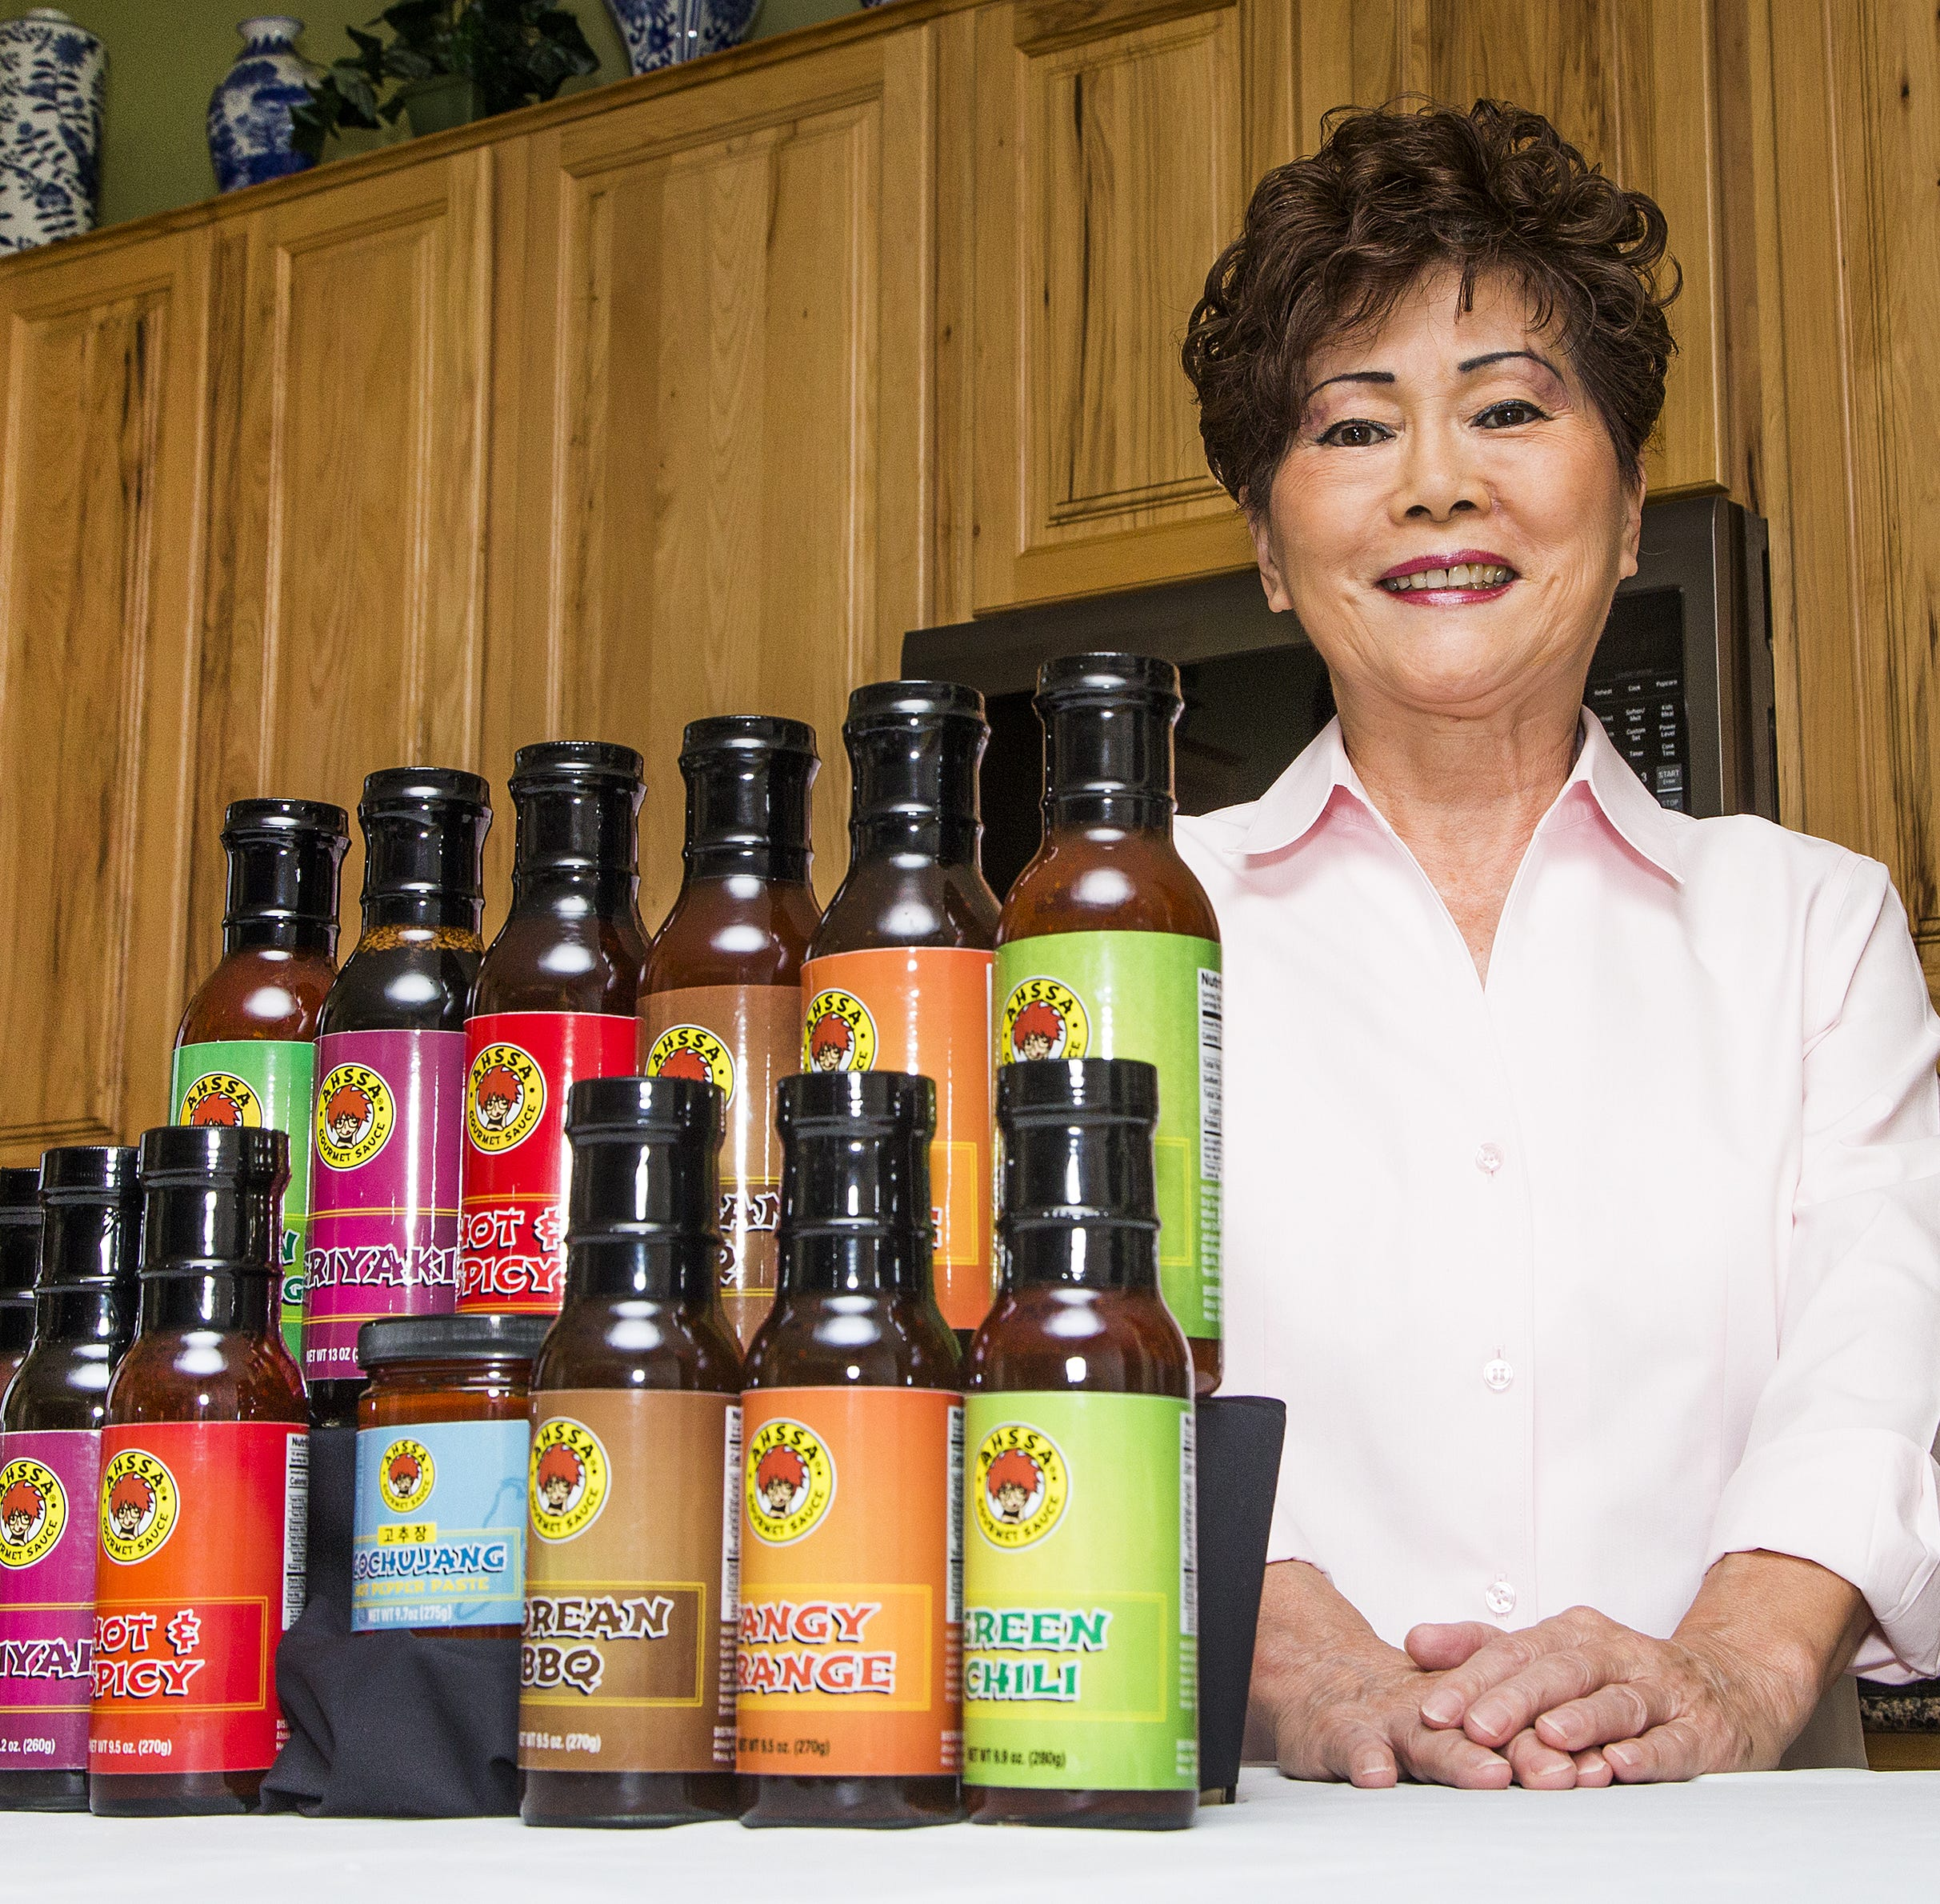 From cooking sauces to produce, Walmart to showcase Arizona products at Metrocenter event